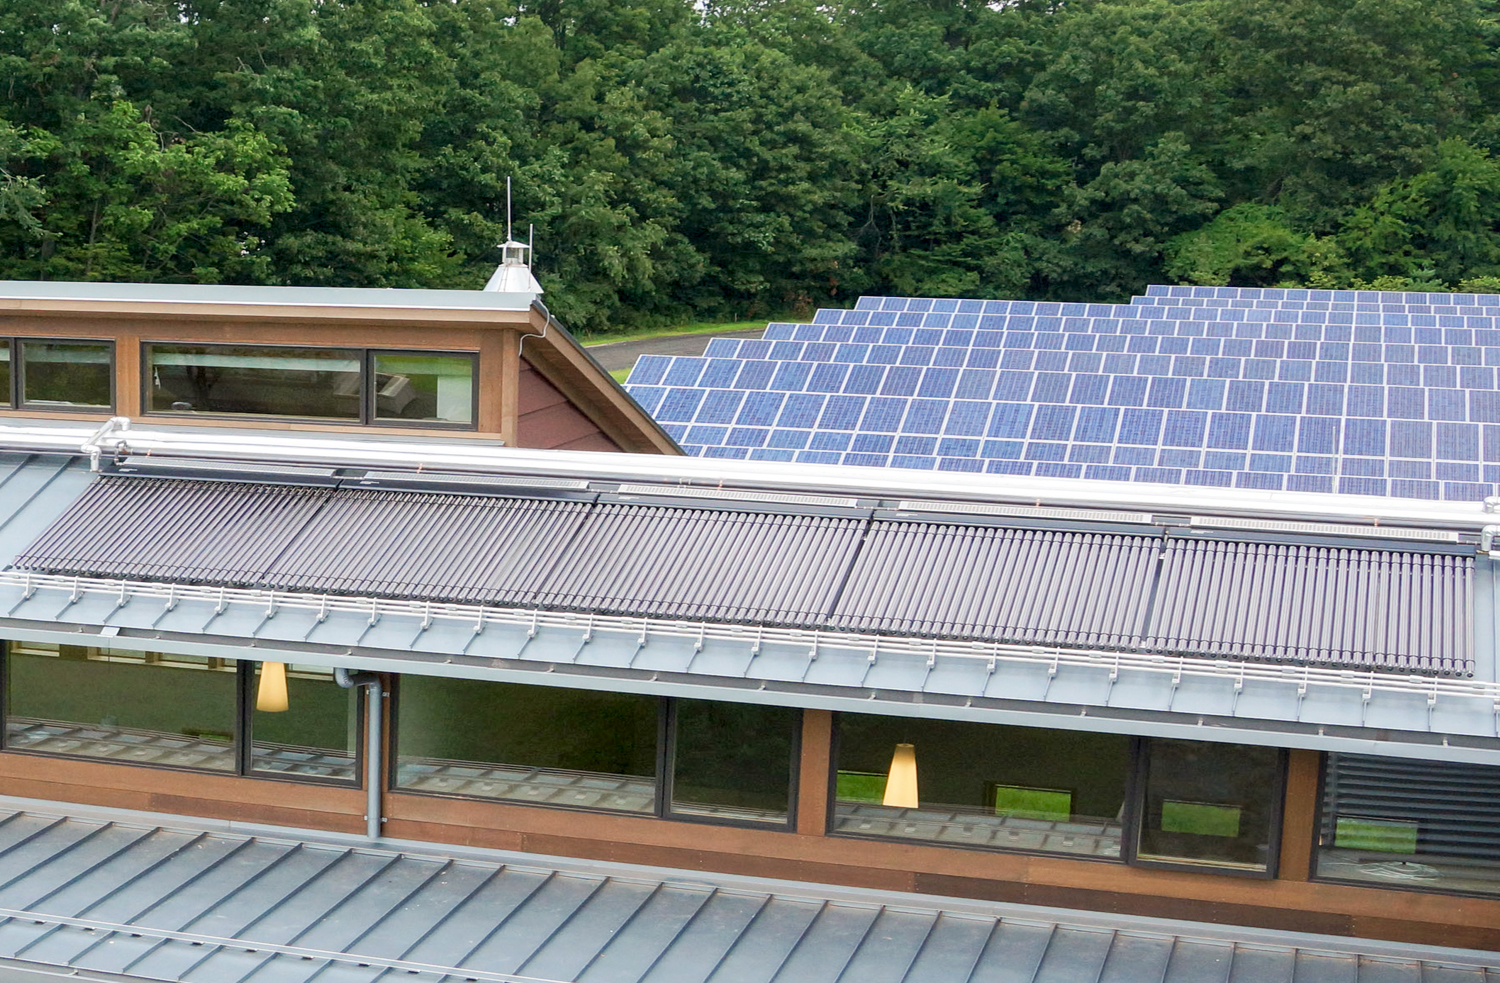 <p>Solar evacuated tube collectors supply domestic hot water. Excess hot water supplements the building's heating system.</p>